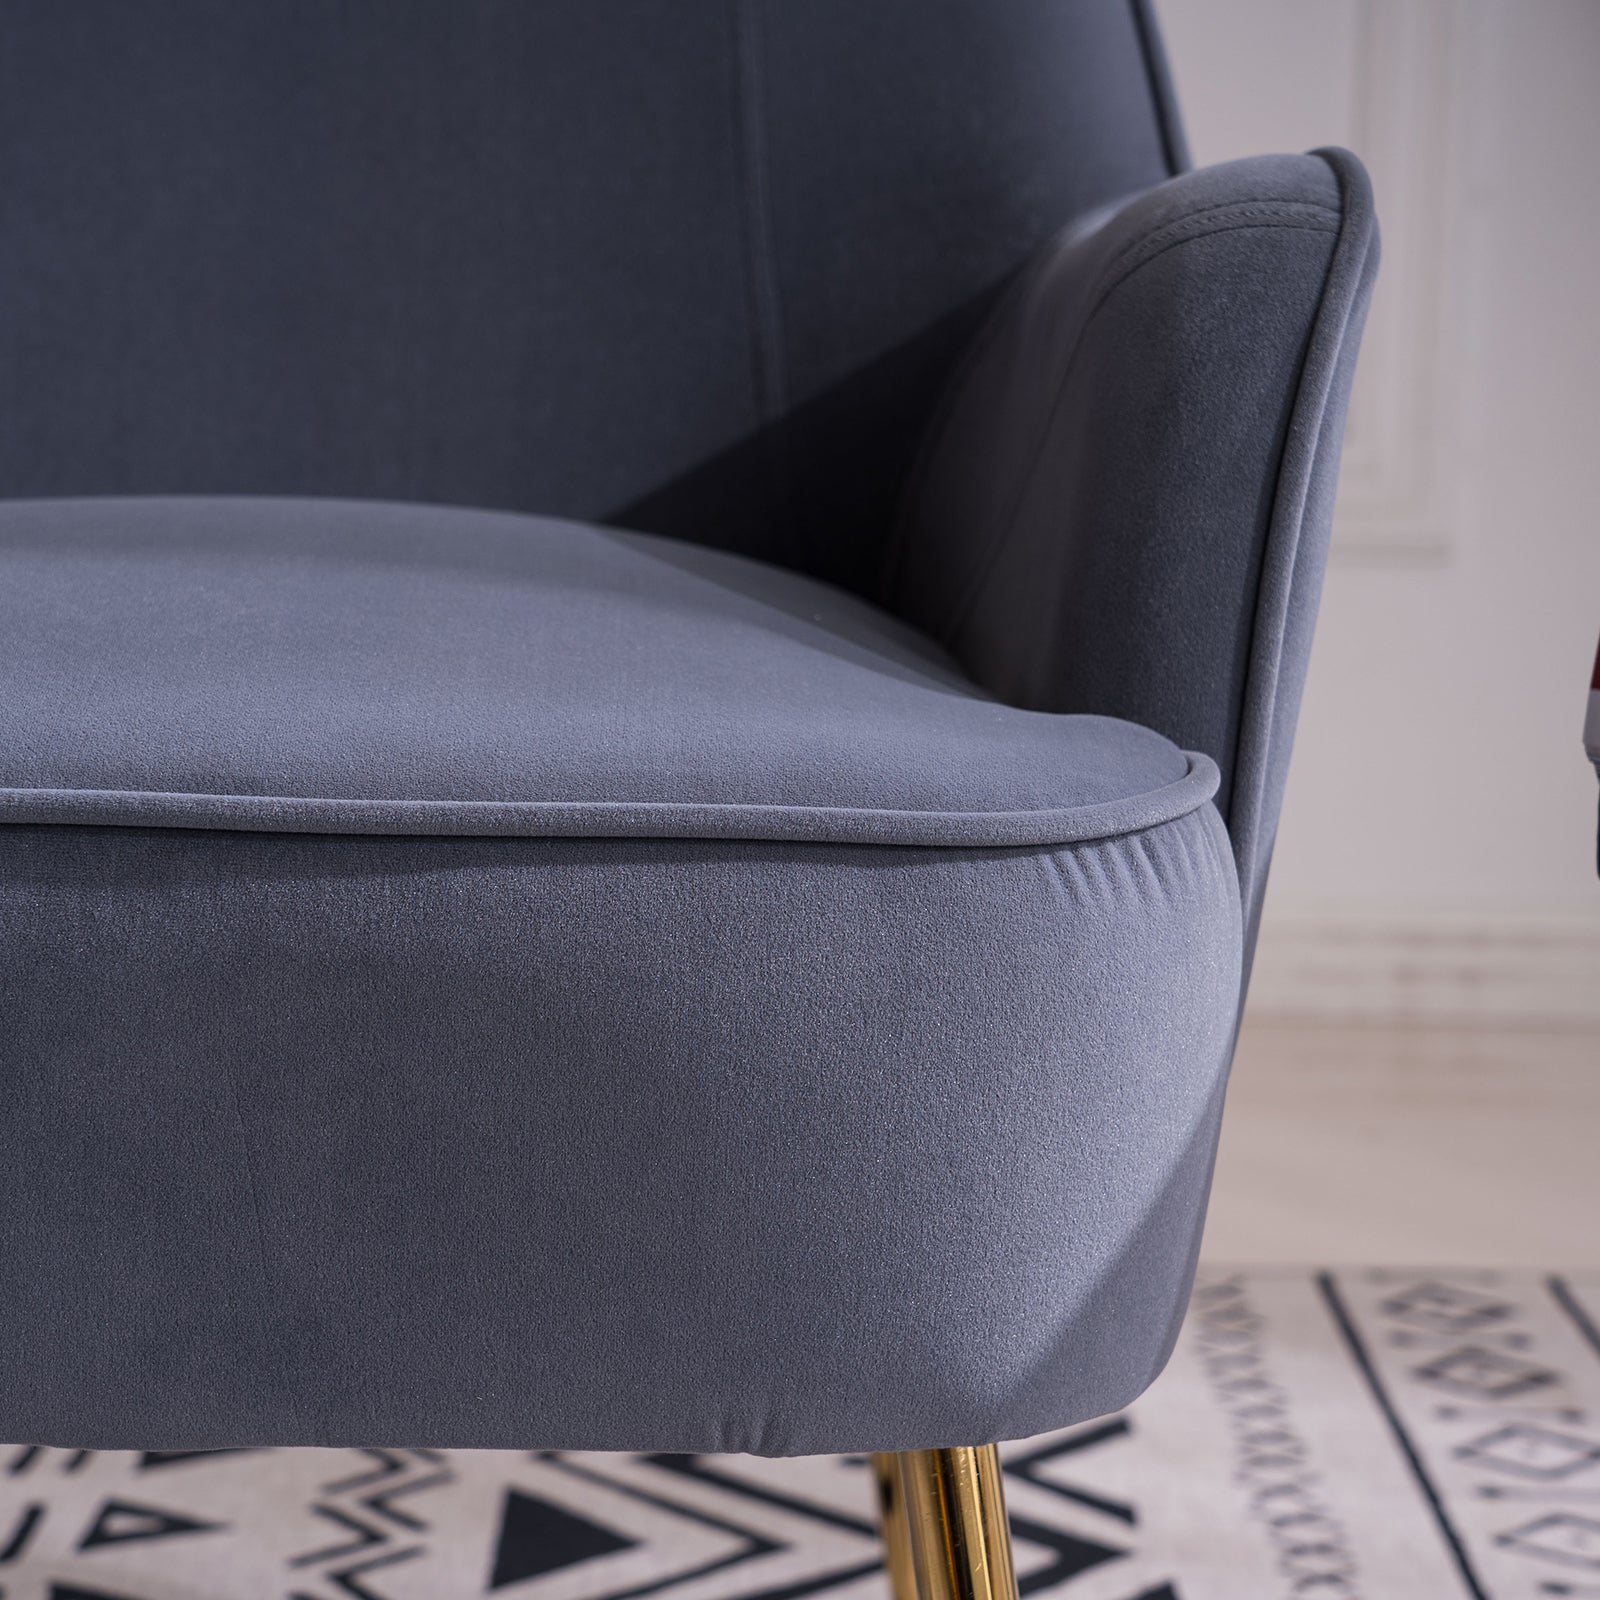 Slate Gray Velvet Accent Chair With Gold Metal Legs BH5272484 BHW5272815